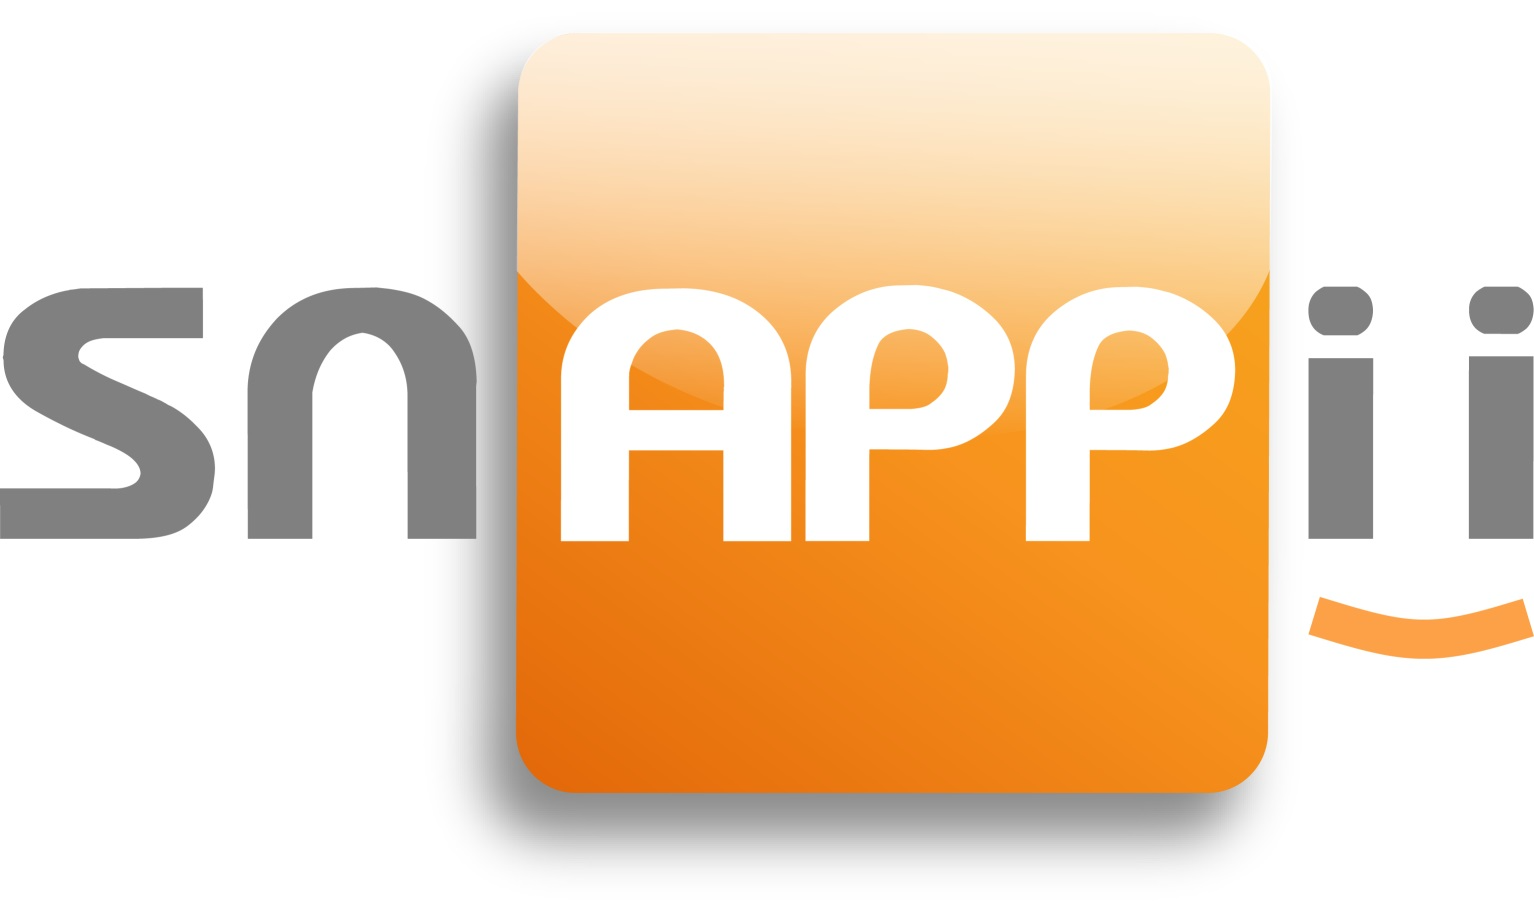 Snappii Mobile Apps